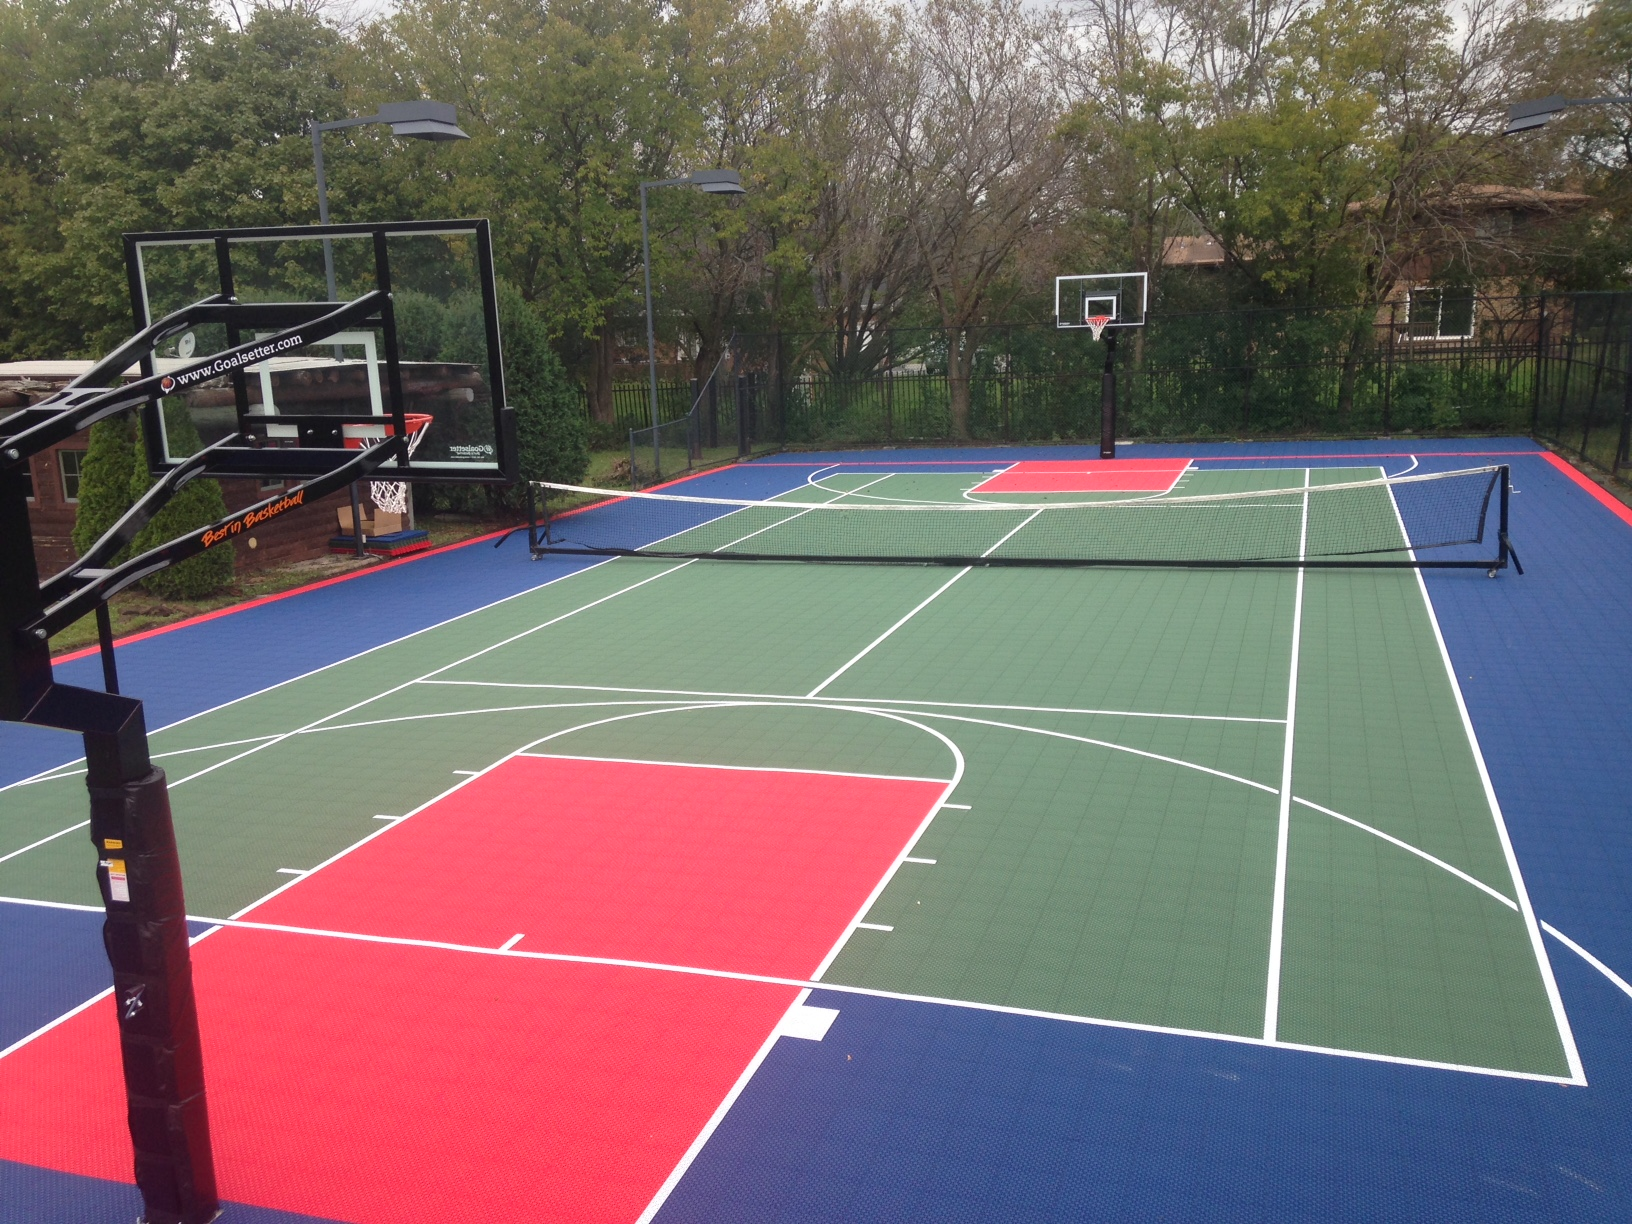 Sports courts for backyards bedroom window seat ideas Basketball court installation cost